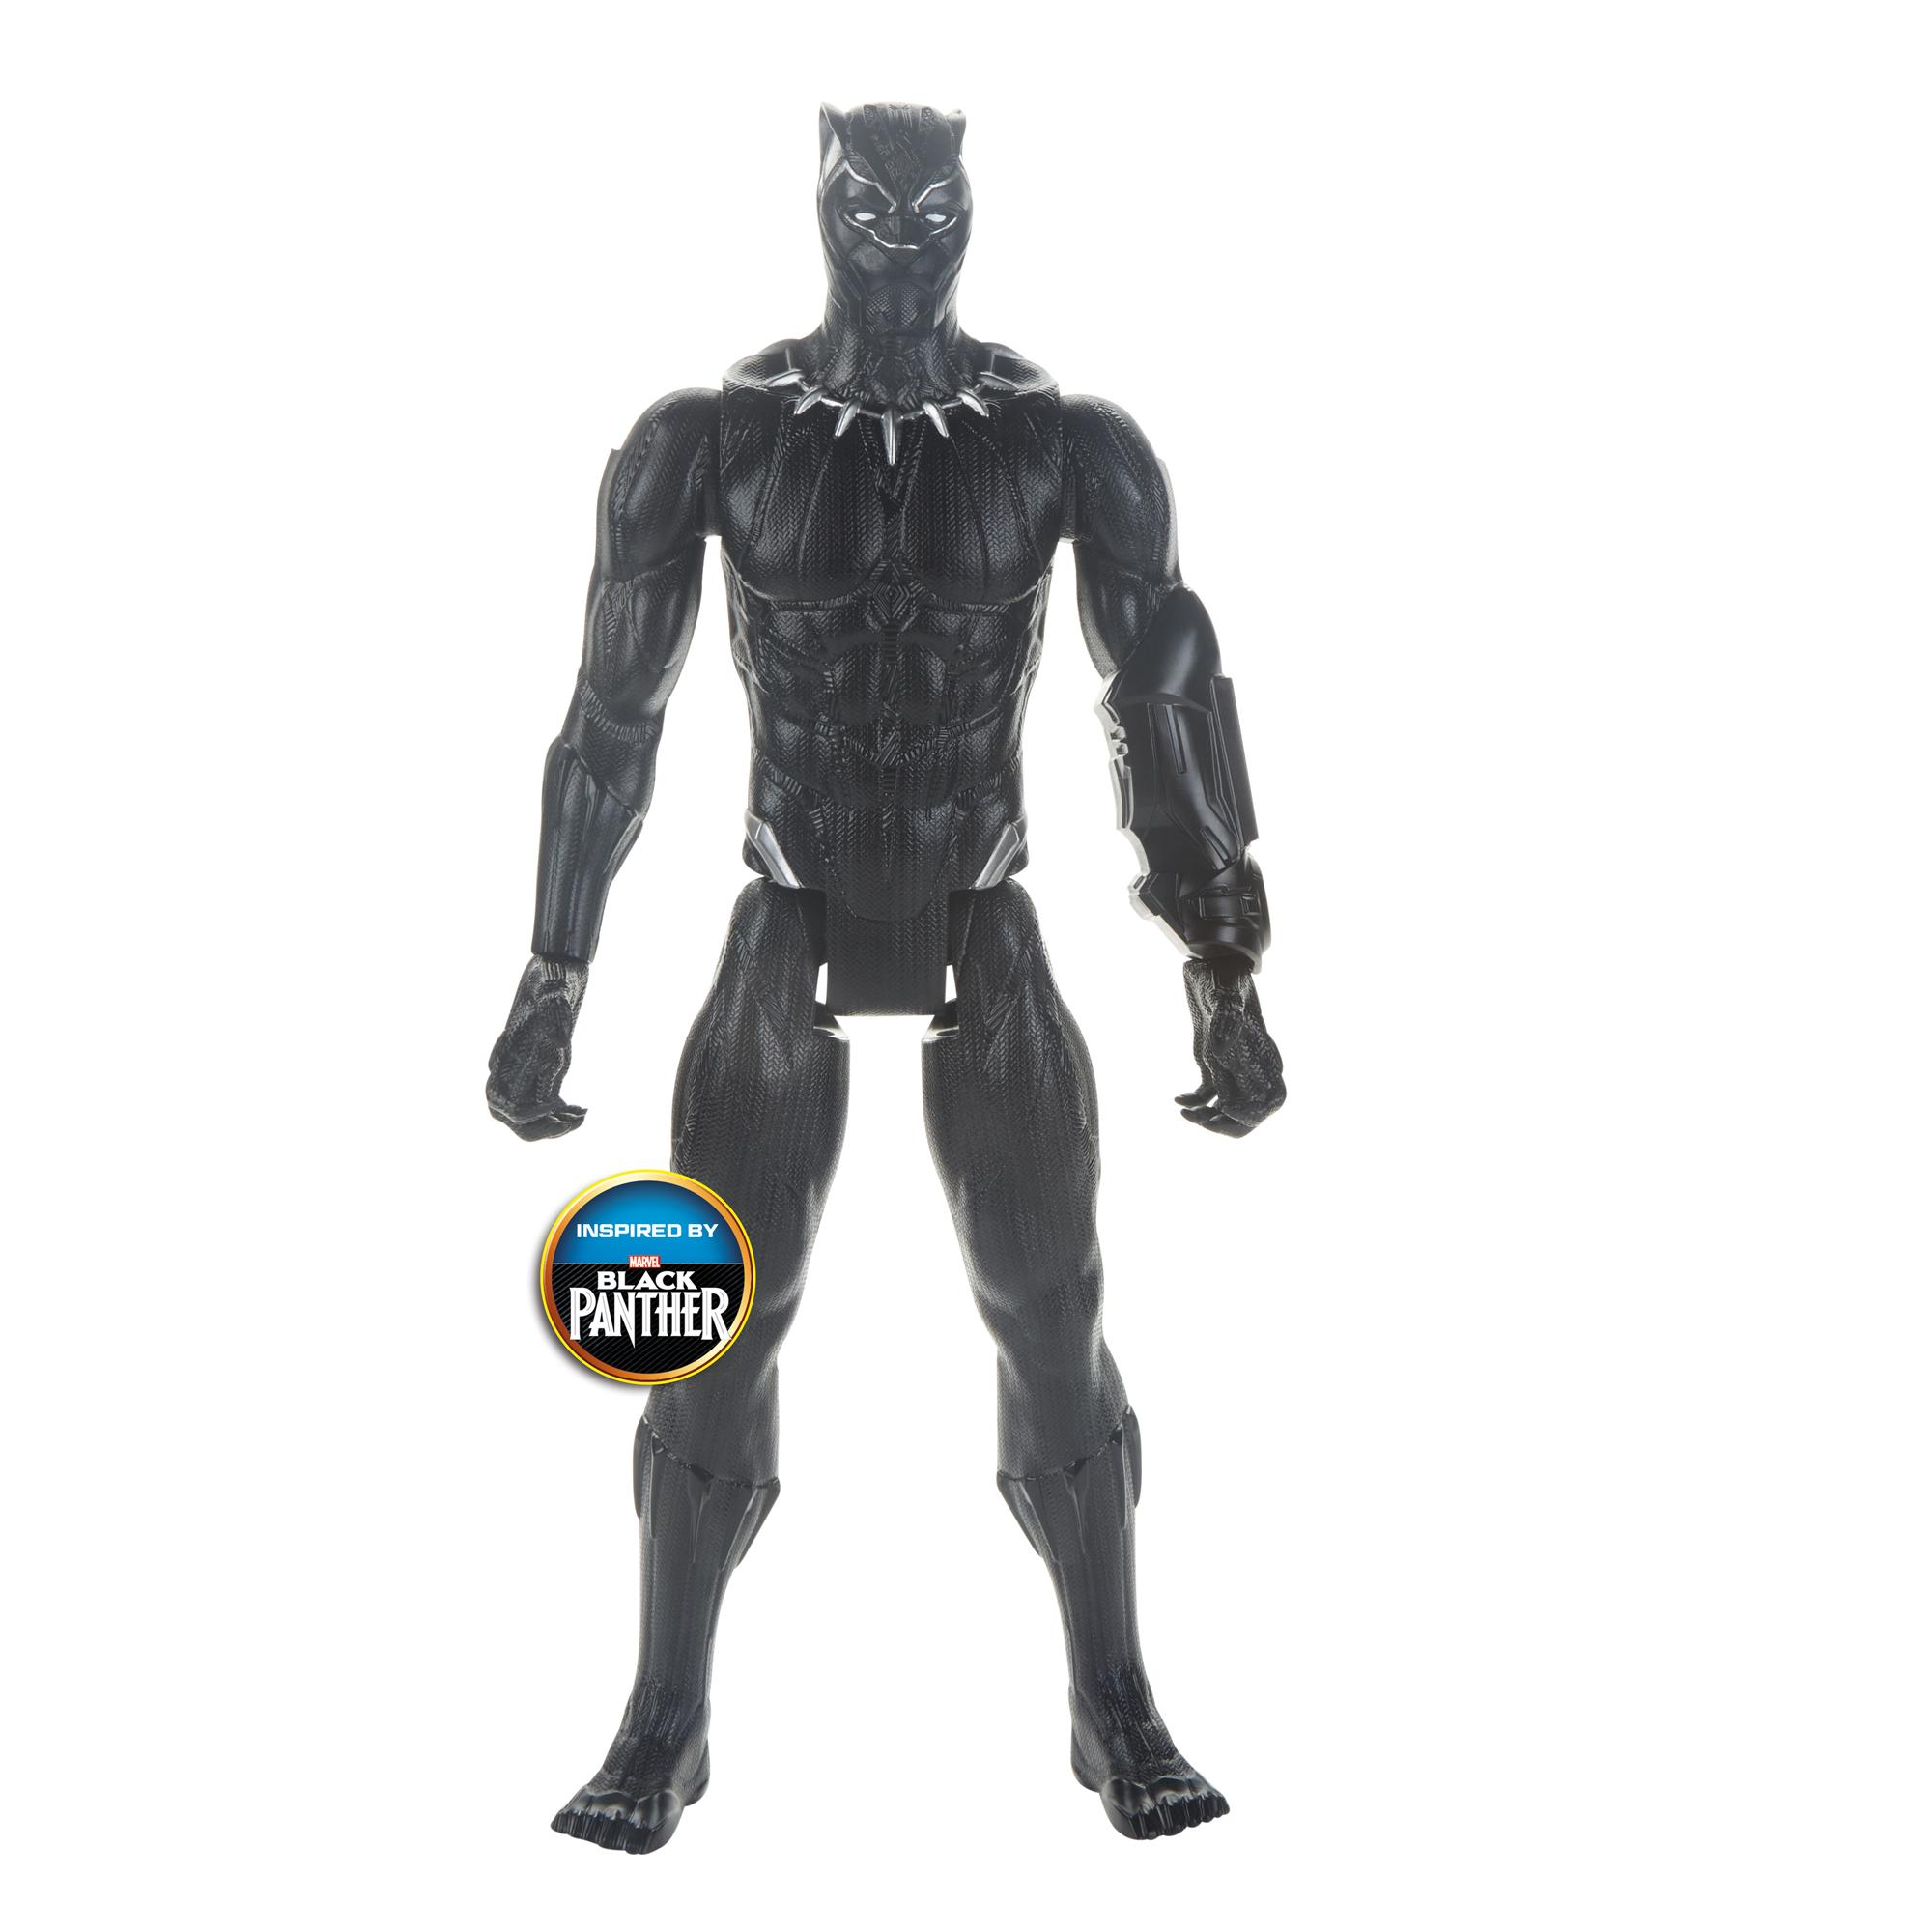 AVN FILM TITAN BLACK PANTHER